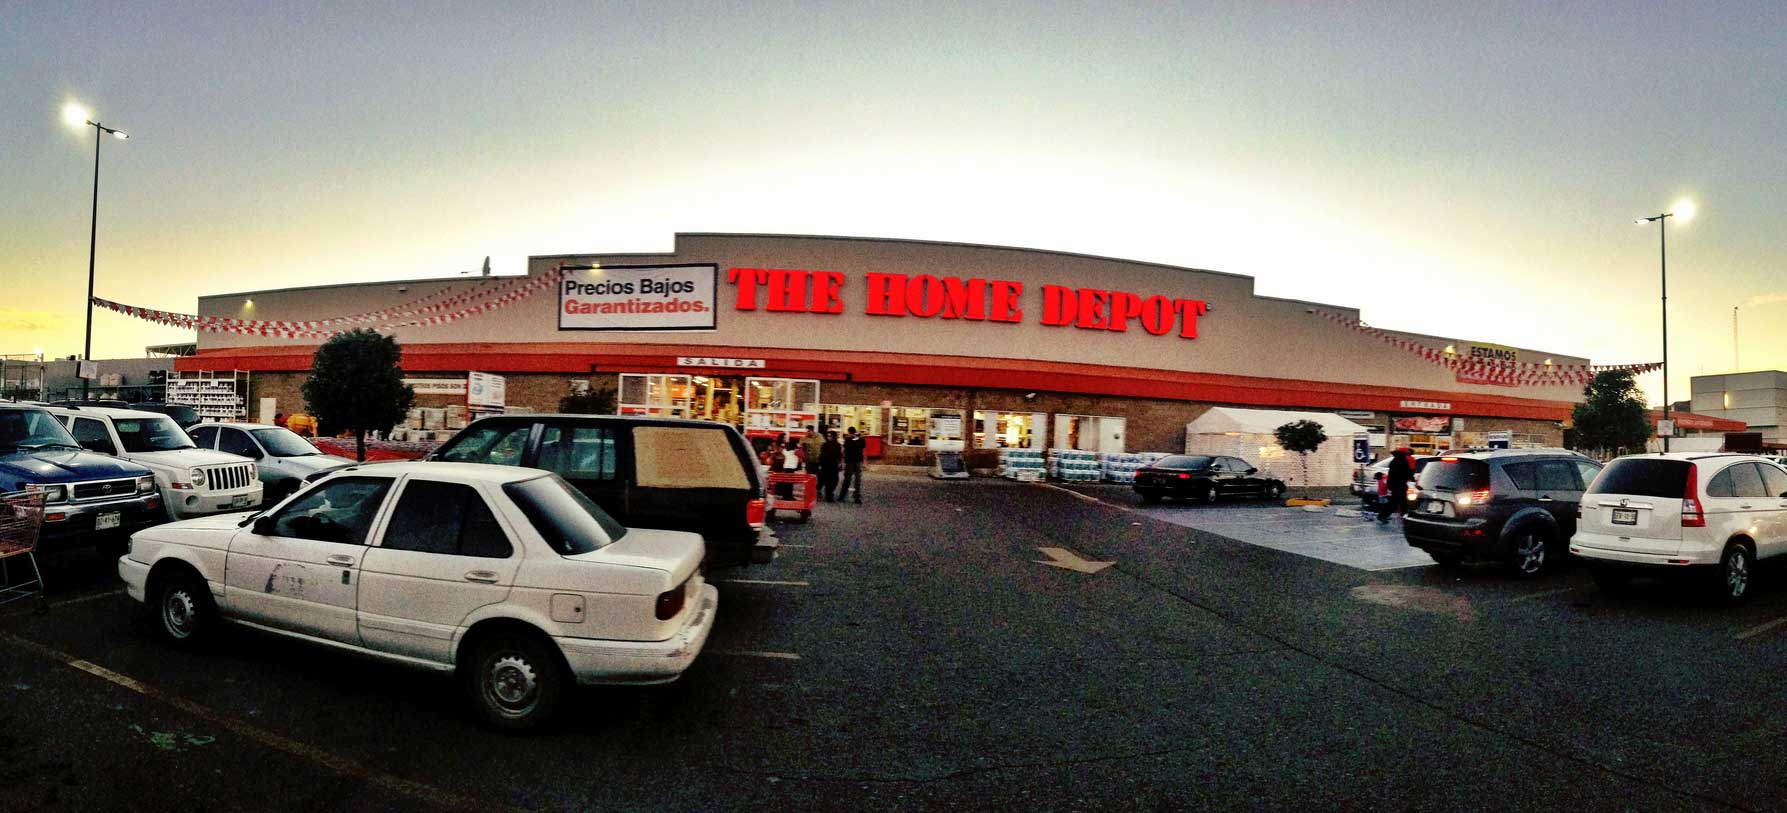 The Home depot, The home depot expansion,  home depot, home improvement store, construction depot